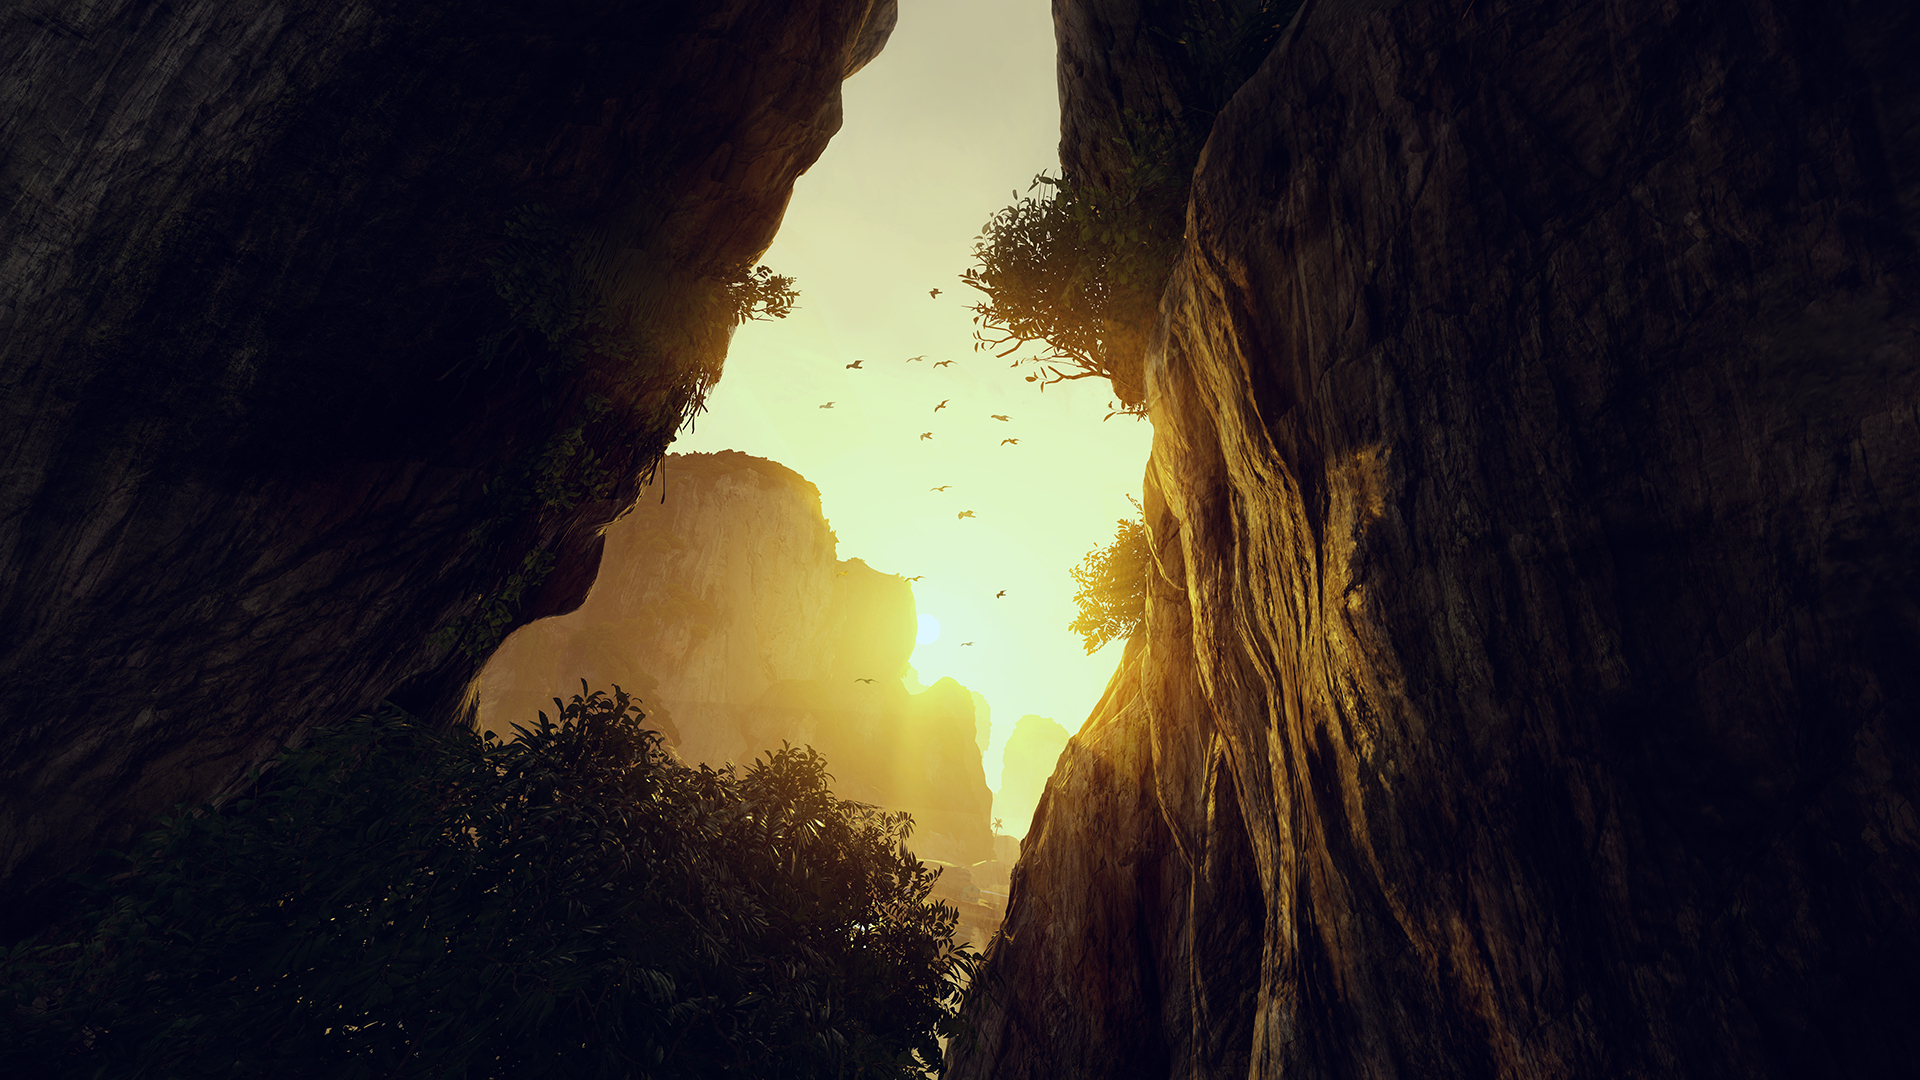 Microsoft Wallpaper Fall Crytek S The Climb Is A Jaw Dropping Rock Climbing